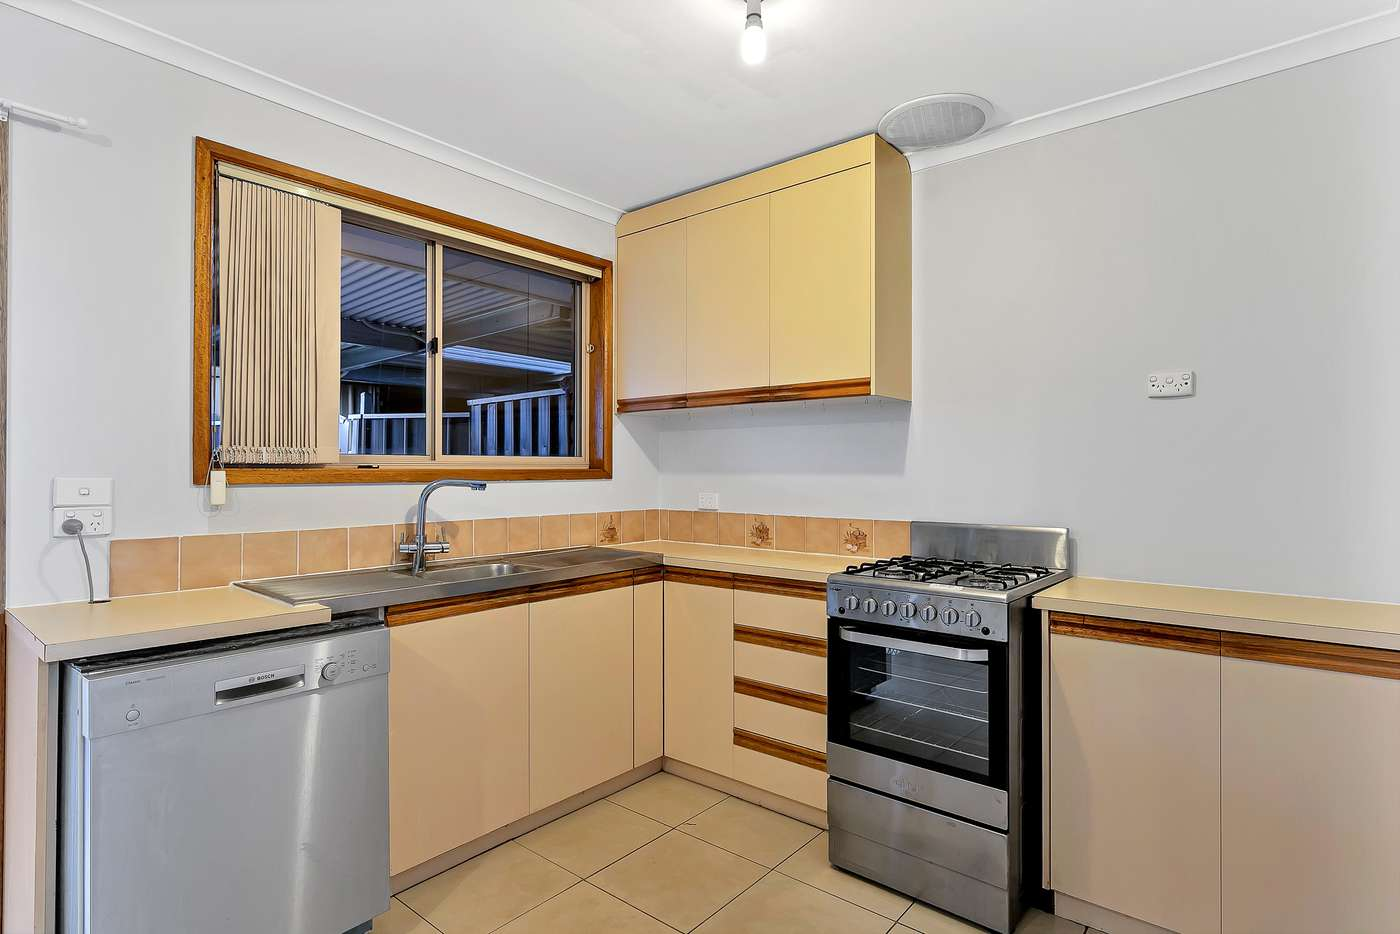 Sixth view of Homely house listing, 28 McInerney Court, Andrews Farm SA 5114